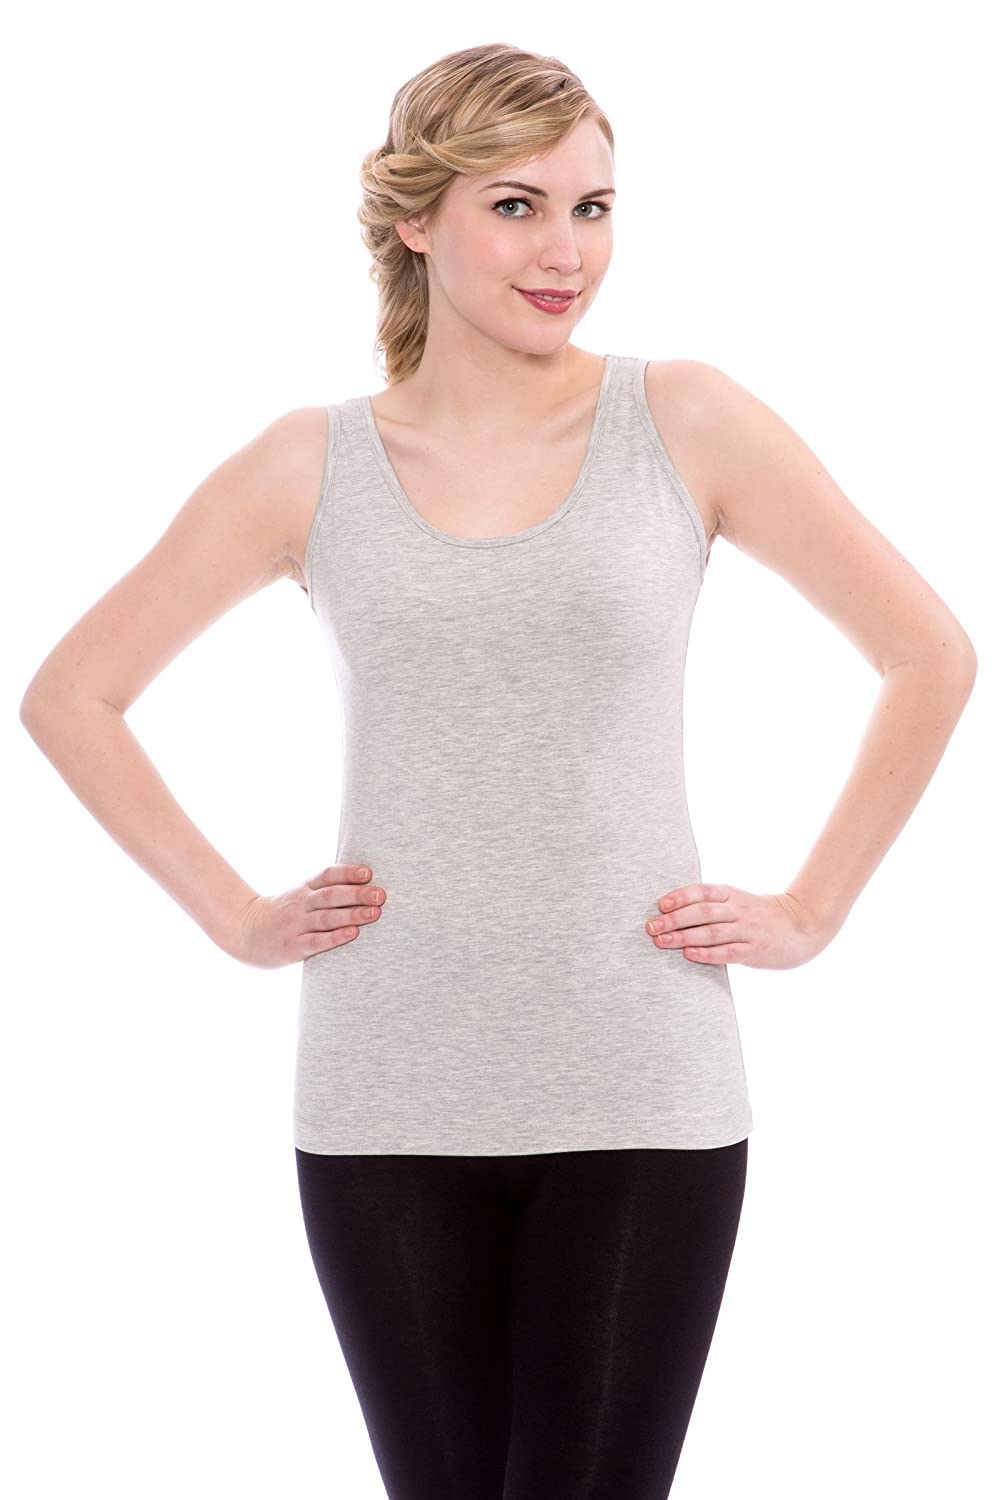 807806630dc370 Texere classic tank tee-shirt is exclusively fulfilled by Amazon. Buy ONLY  when indicated as being shipped by Amazon. (SKU  TX-WB116-002)